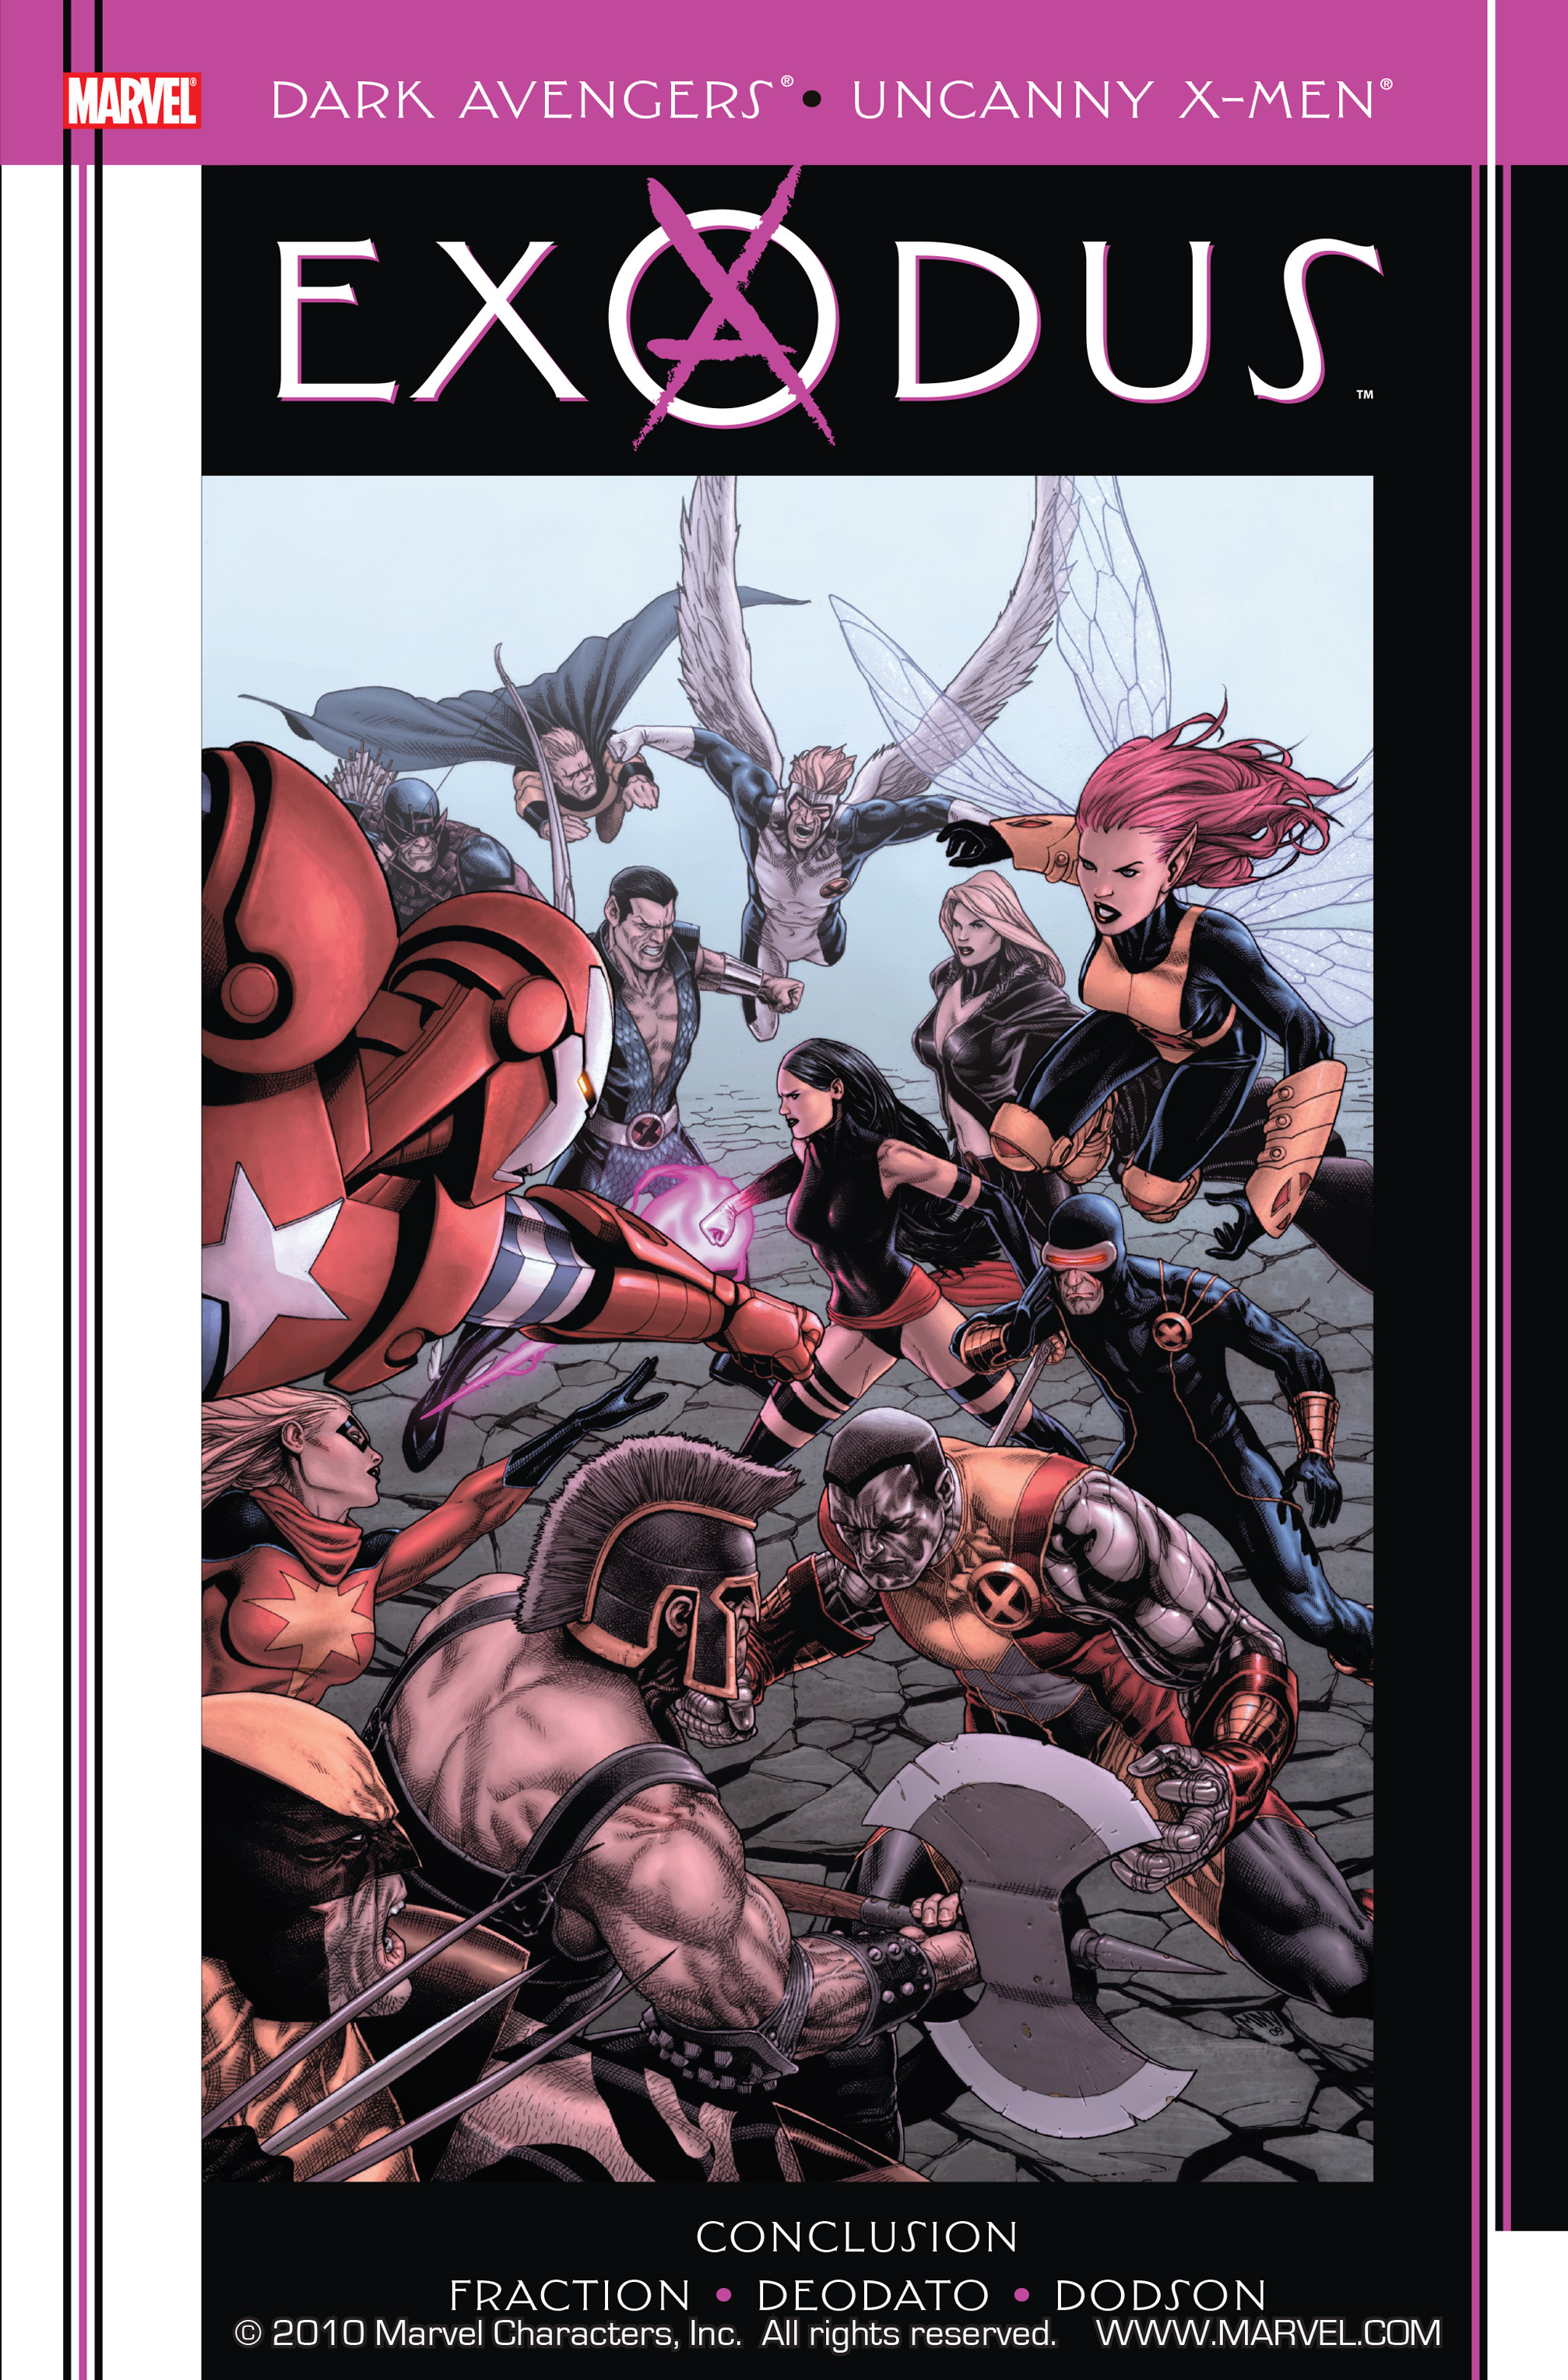 Dark Avengers / Uncanny X-Men: Exodus Vol 1 1